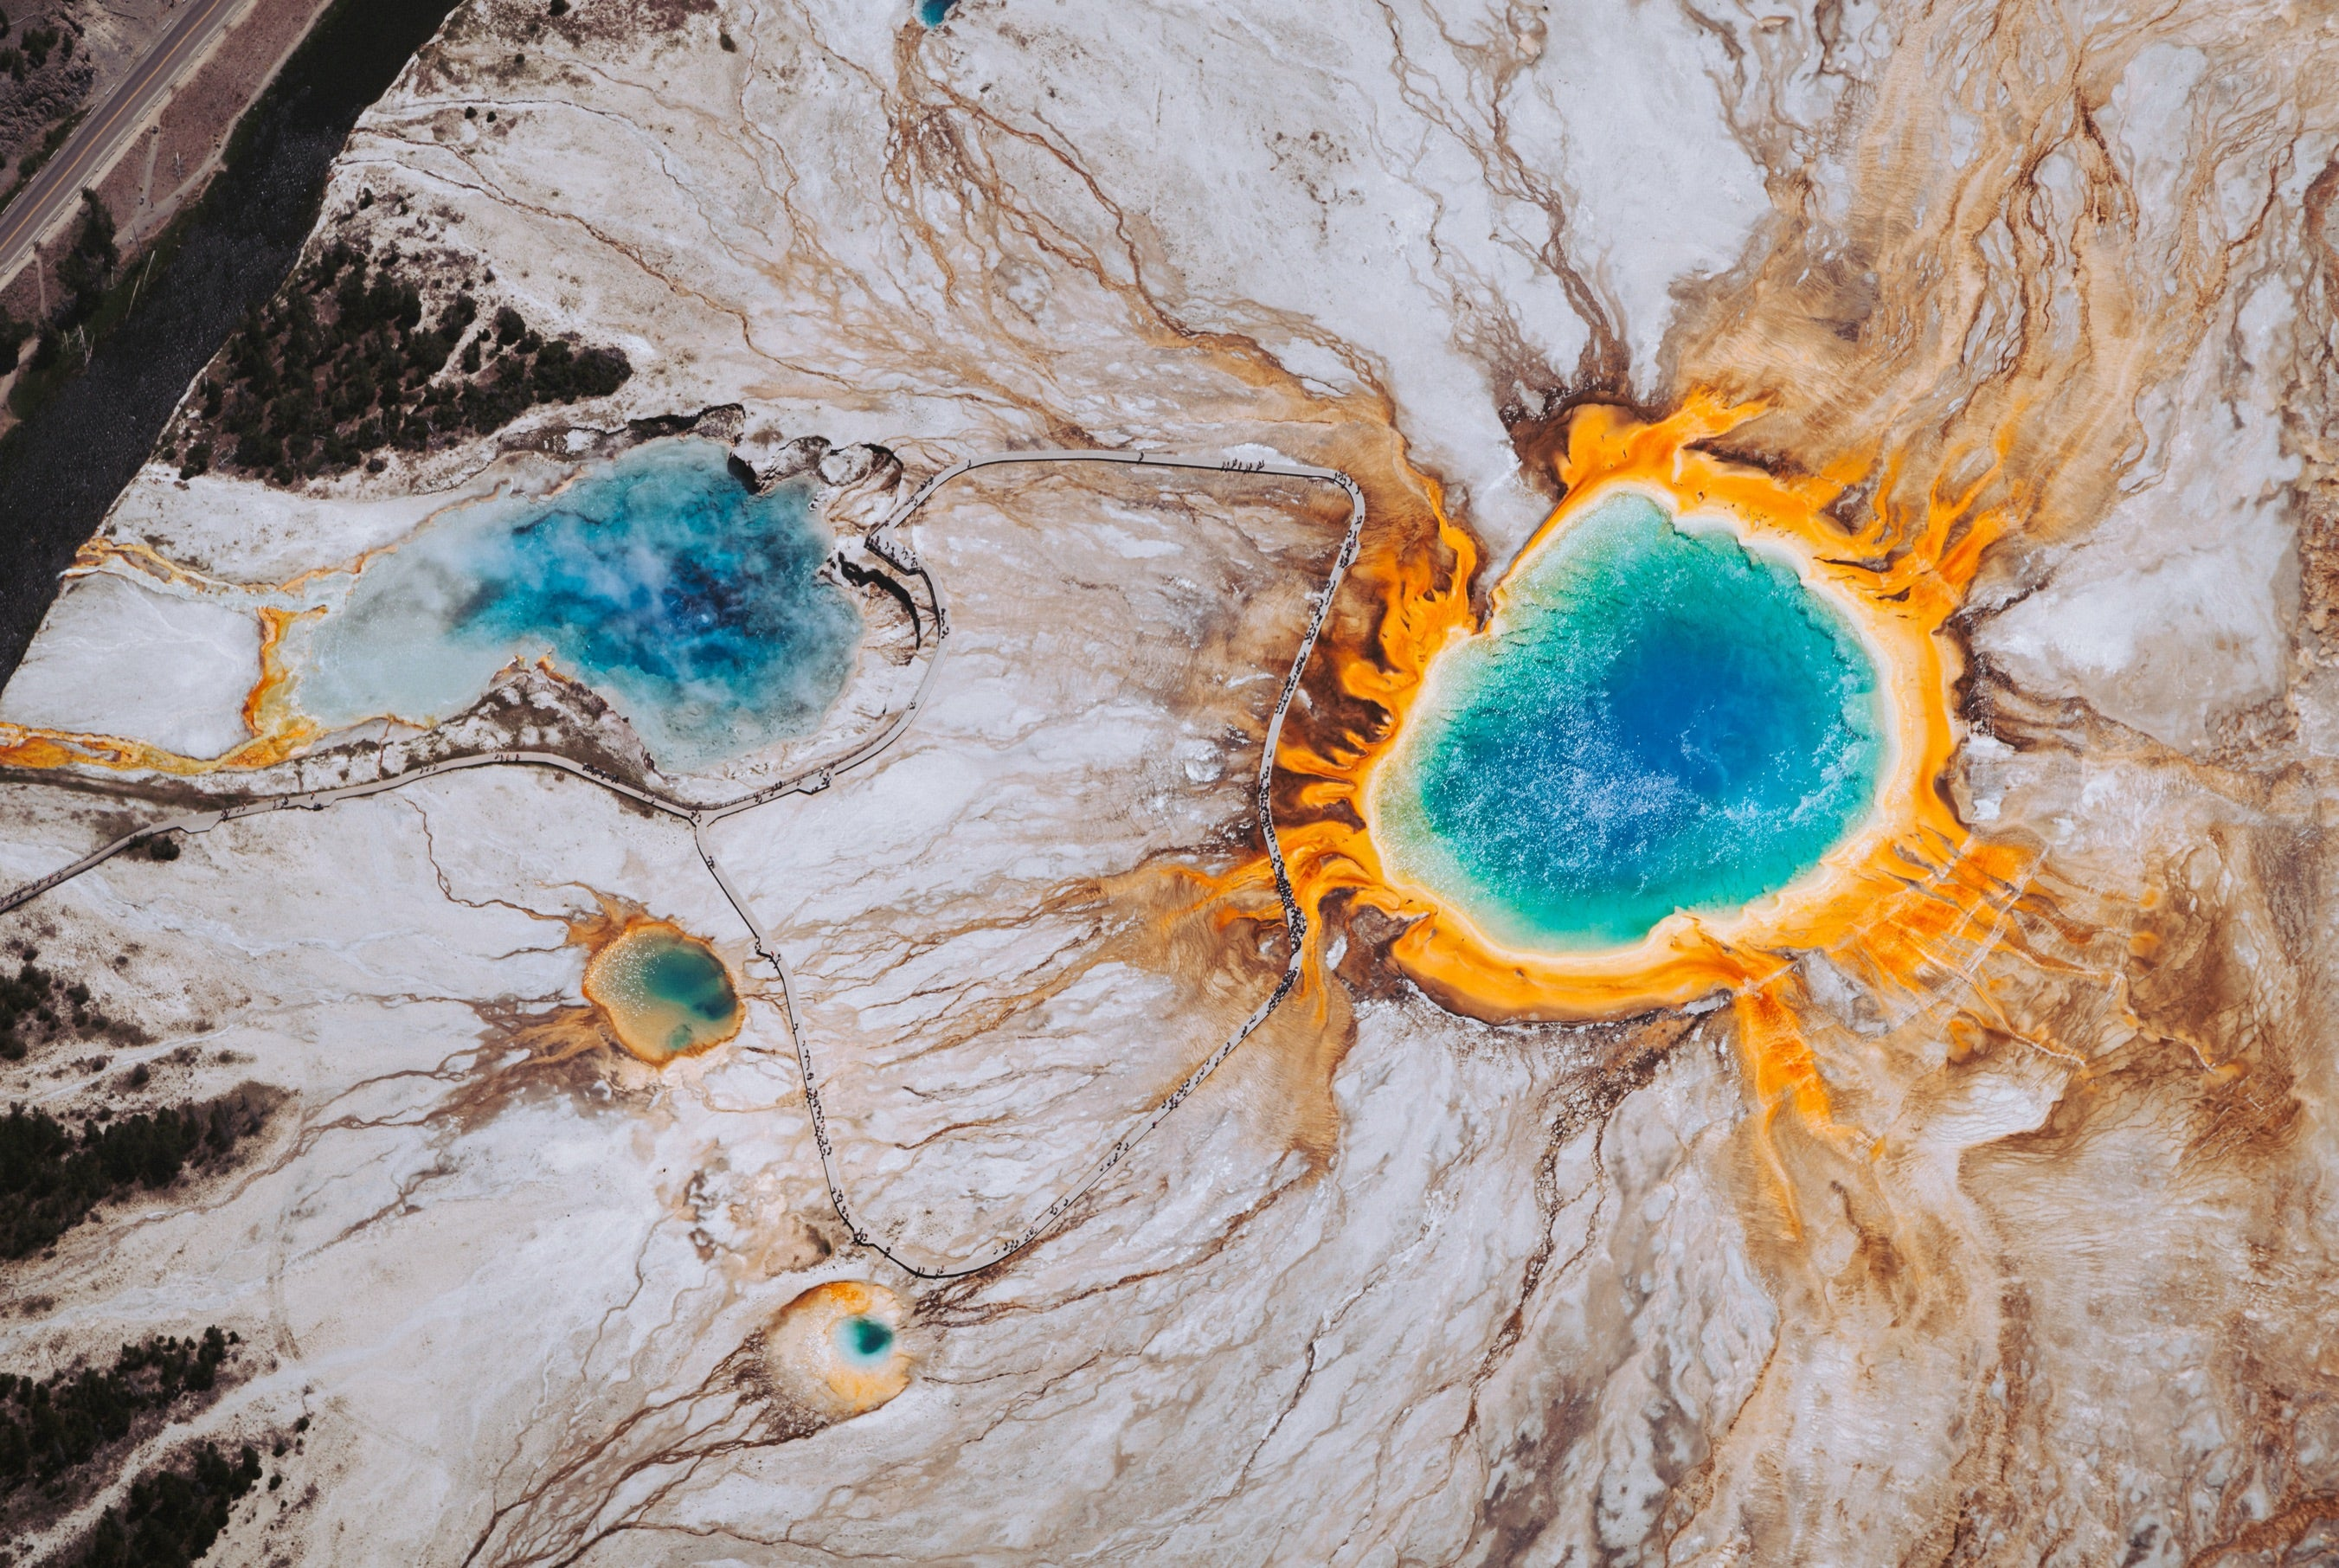 camera strap, camera wrist strap, sunglass straps, outdoor gear, camera equipment, visiting yellowstone national park, best hikes to do in yellowstone, hiking in yellowstone, where to see wildlife in yellowstone national park, lamar valley, yellowstone valley